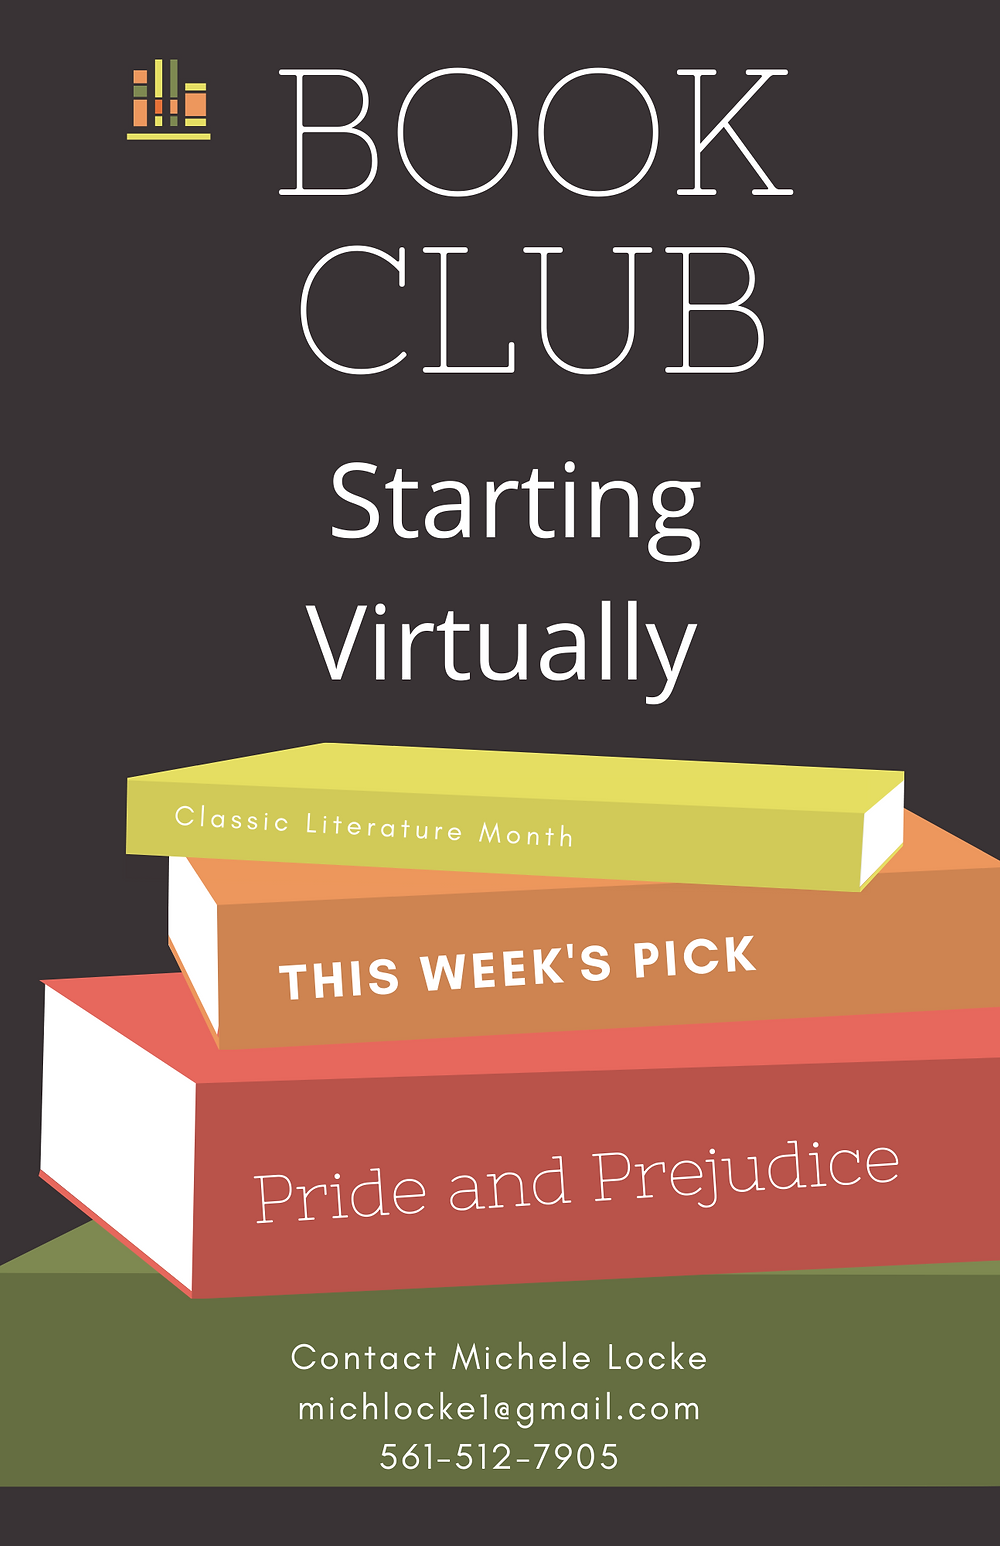 Book Club flyer showing a stack of books